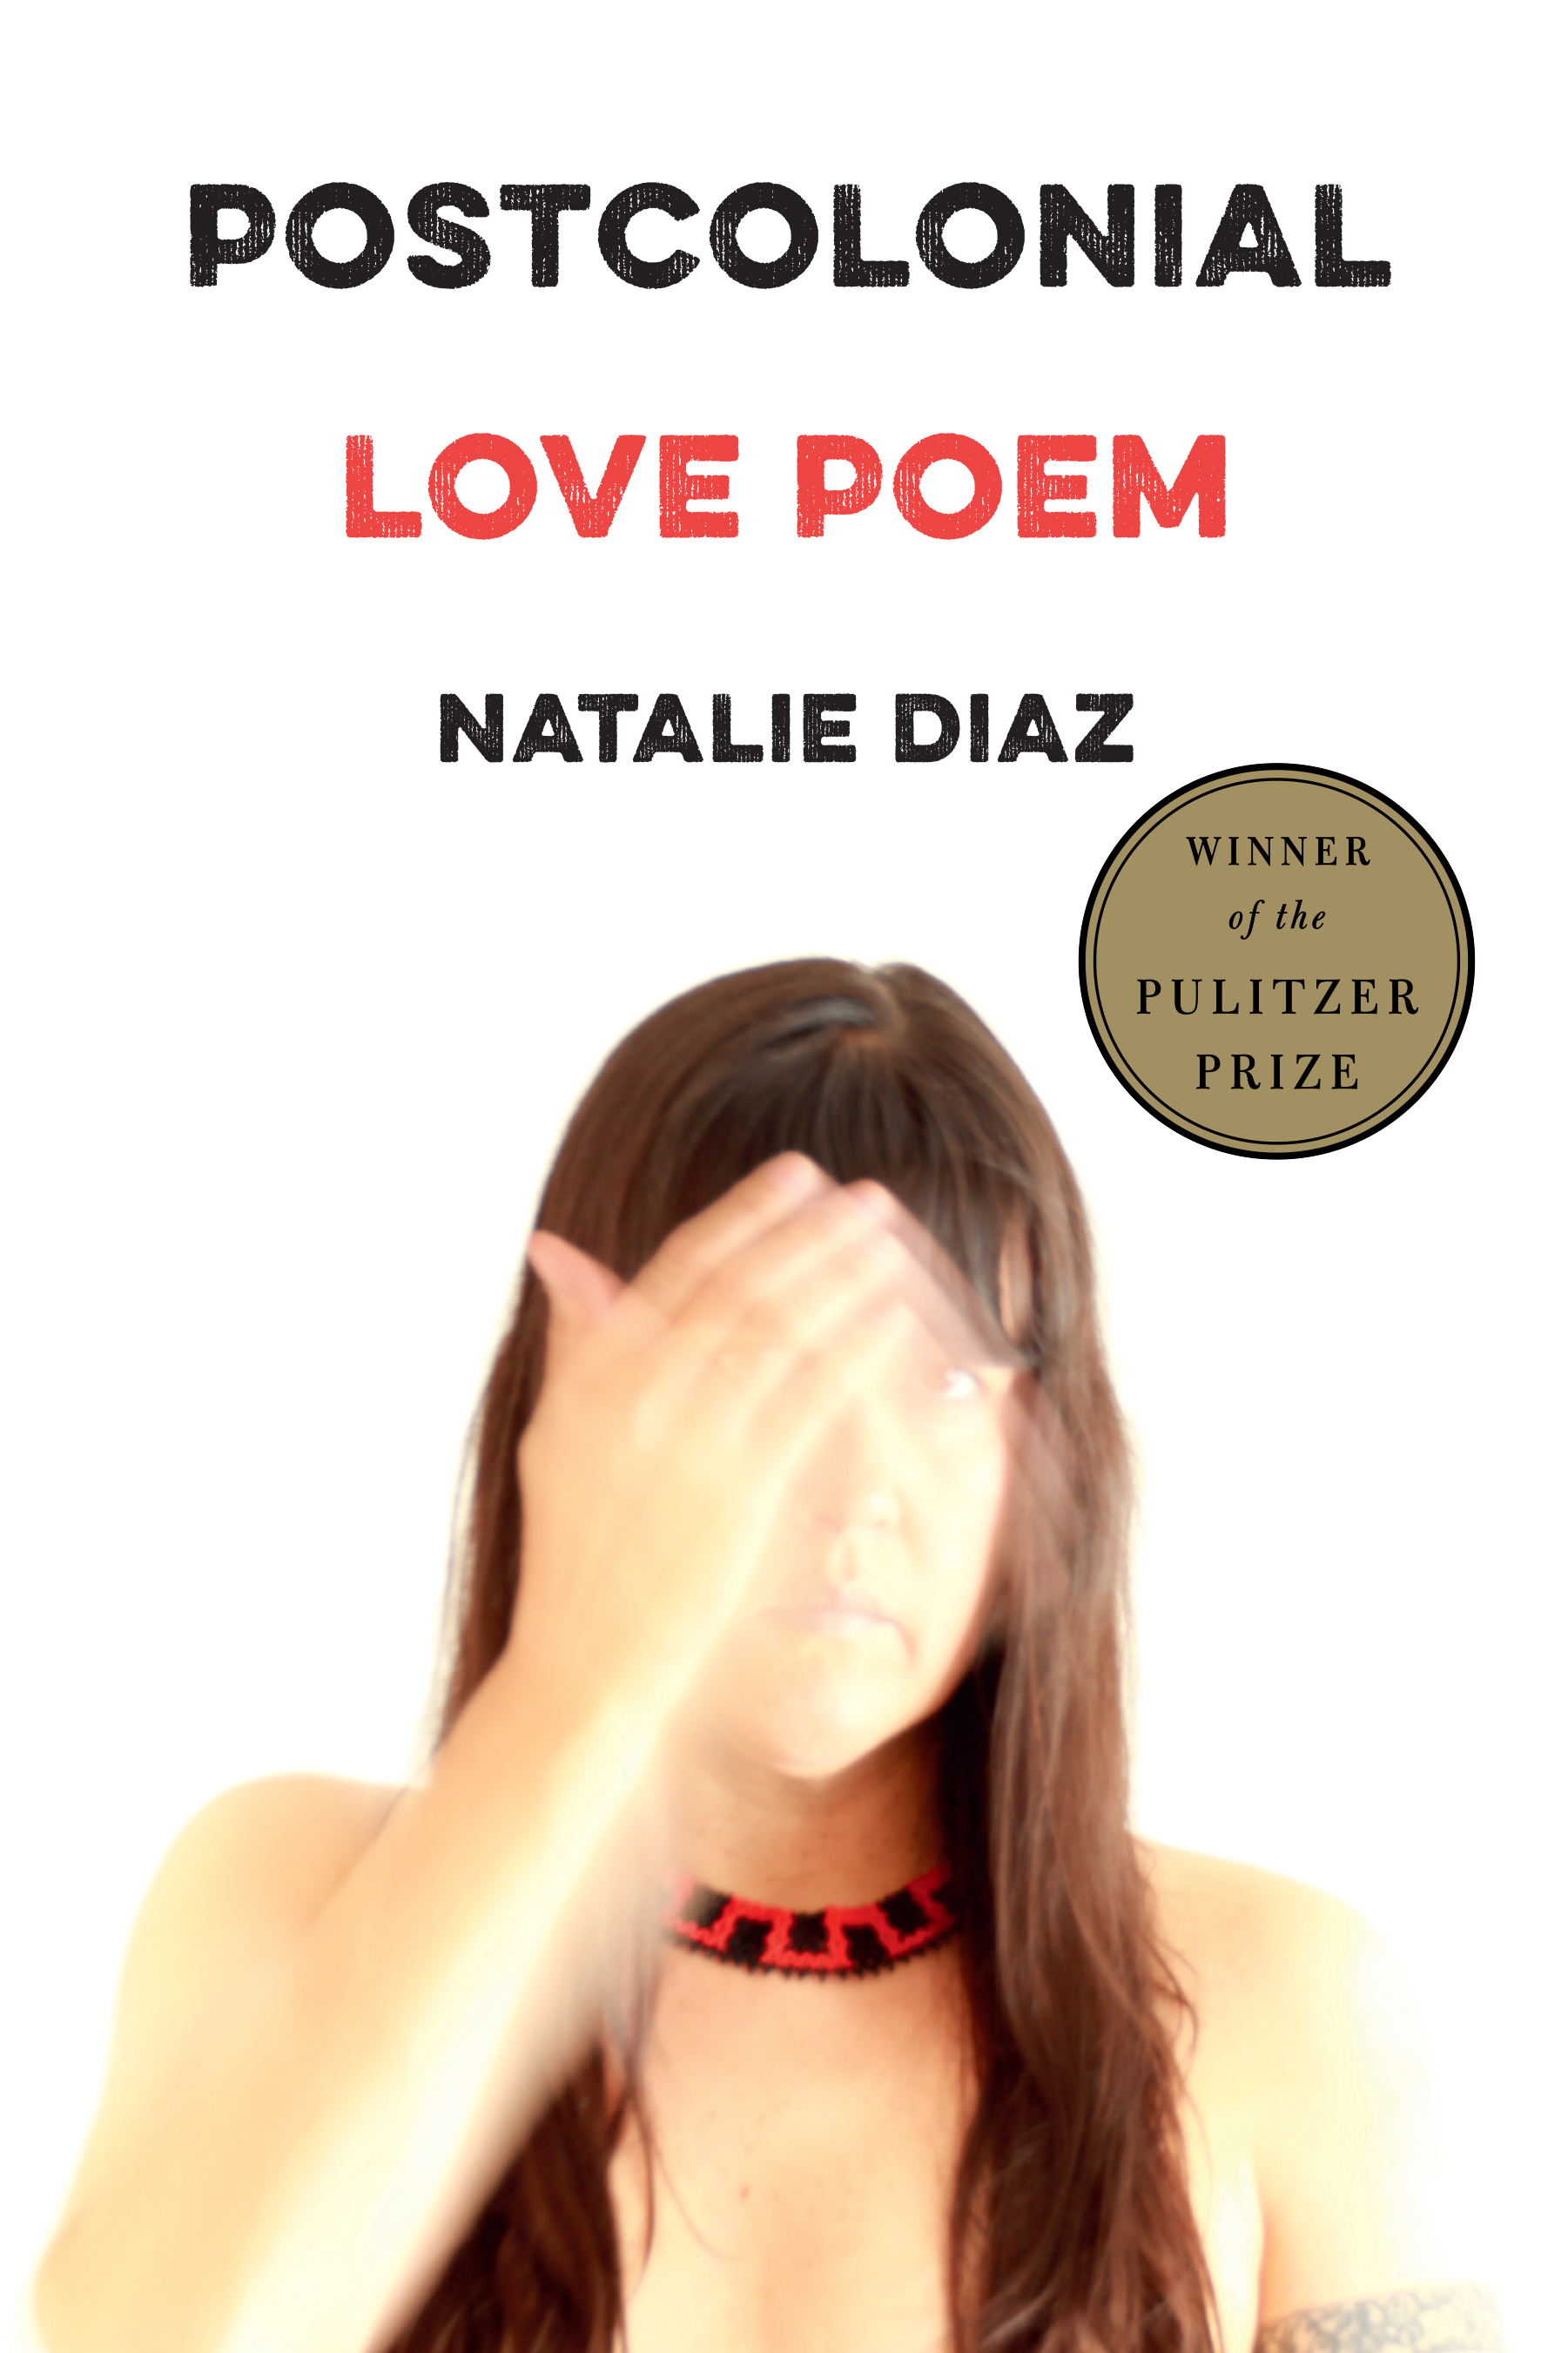 Book cover of Postcolonial Love Poem by Natalie Diaz.